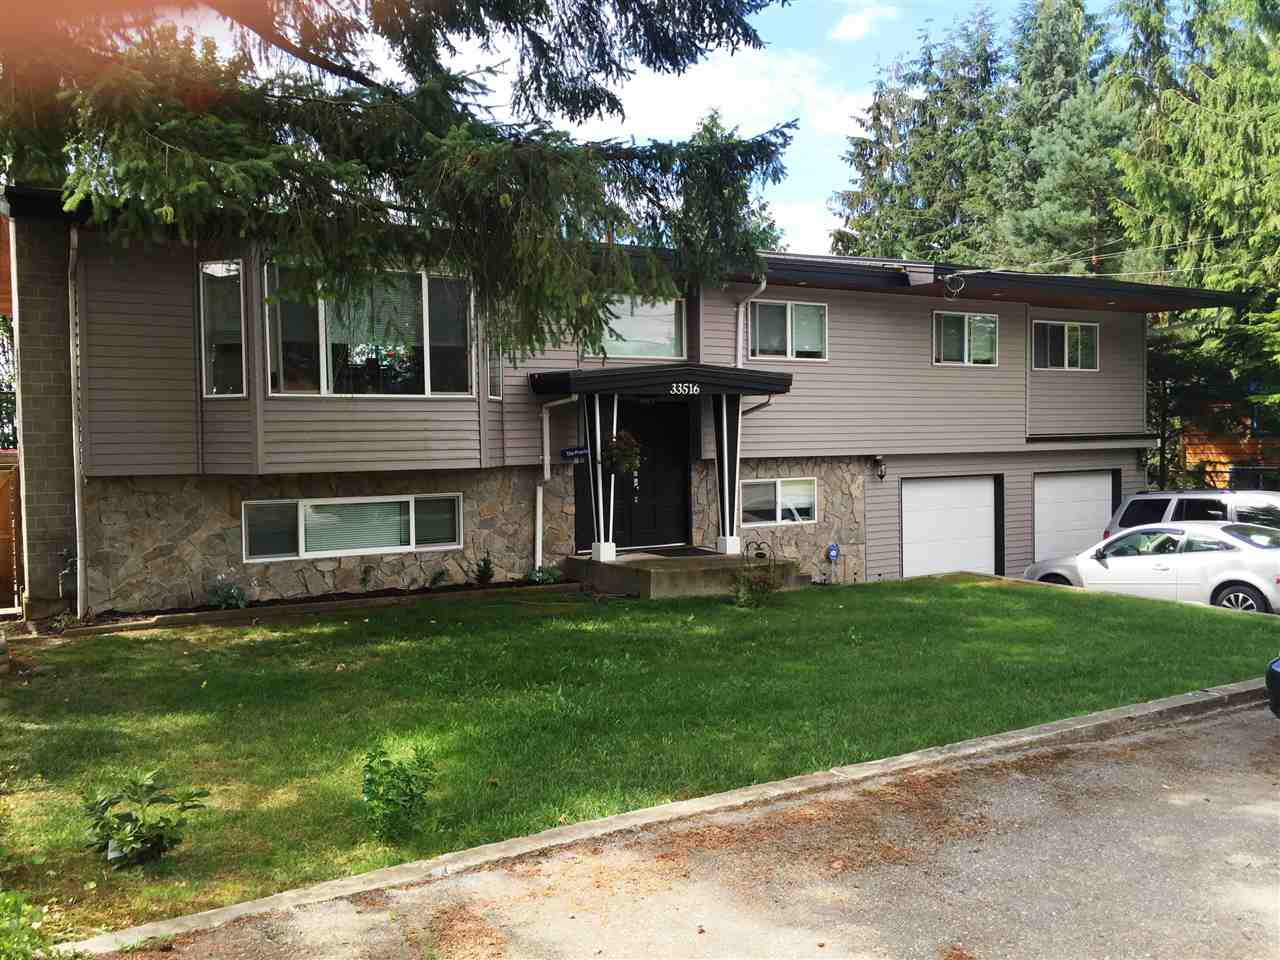 Photo 1: Photos: 33516 CHERRY Street in Mission: Mission BC House for sale : MLS®# R2094780